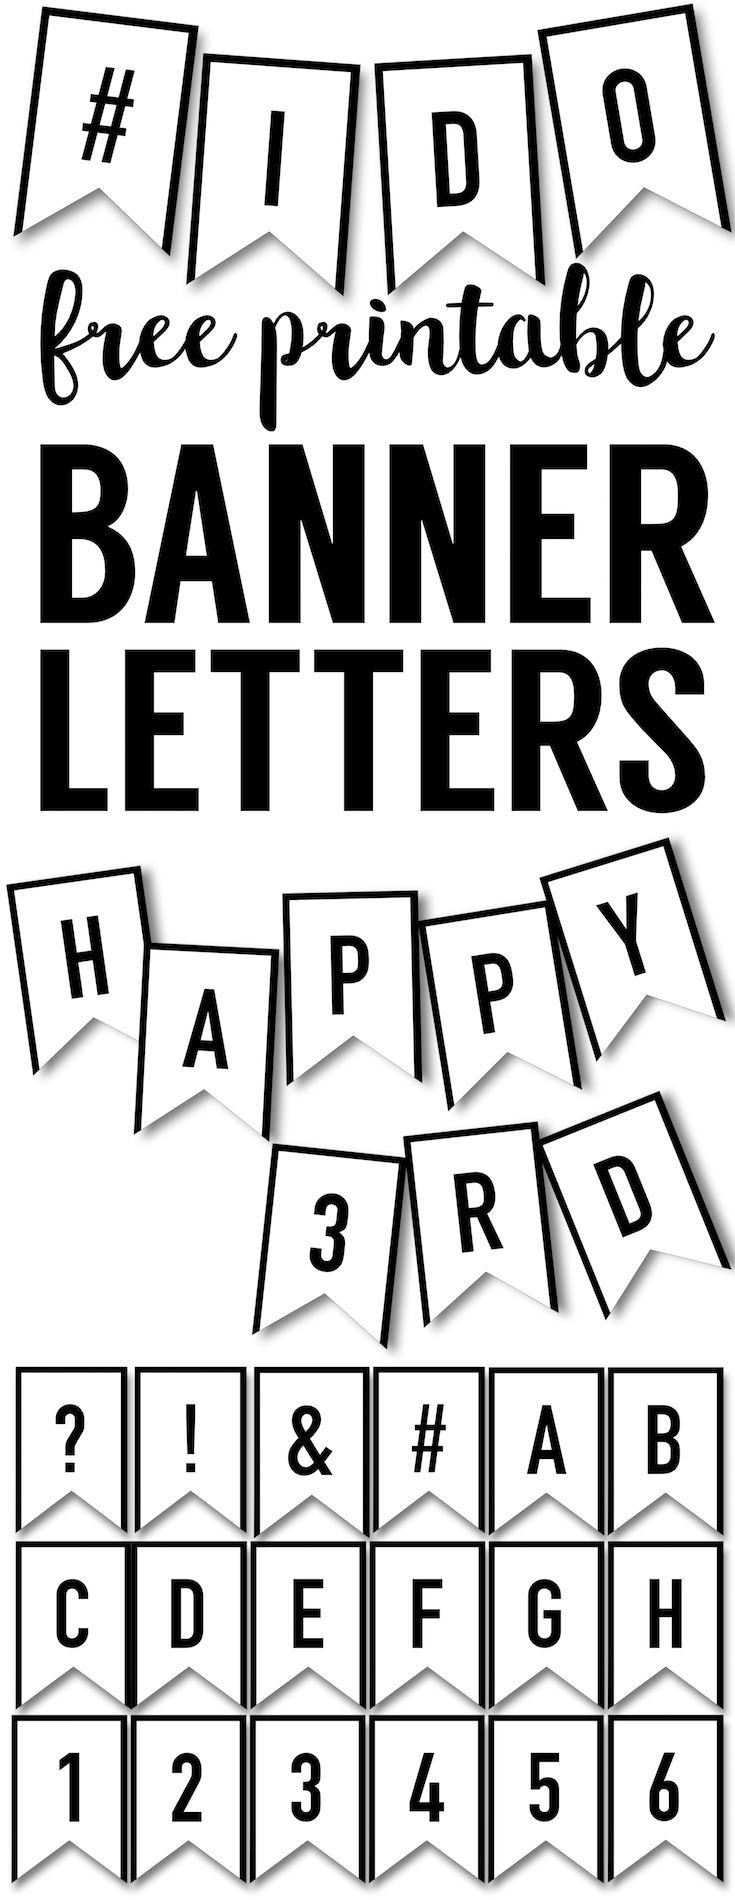 Banner Templates Free Printable Abc Letters Paper Trail Design Free Printable Abc Letters Birthday Banner Free Printable Printable Birthday Banner